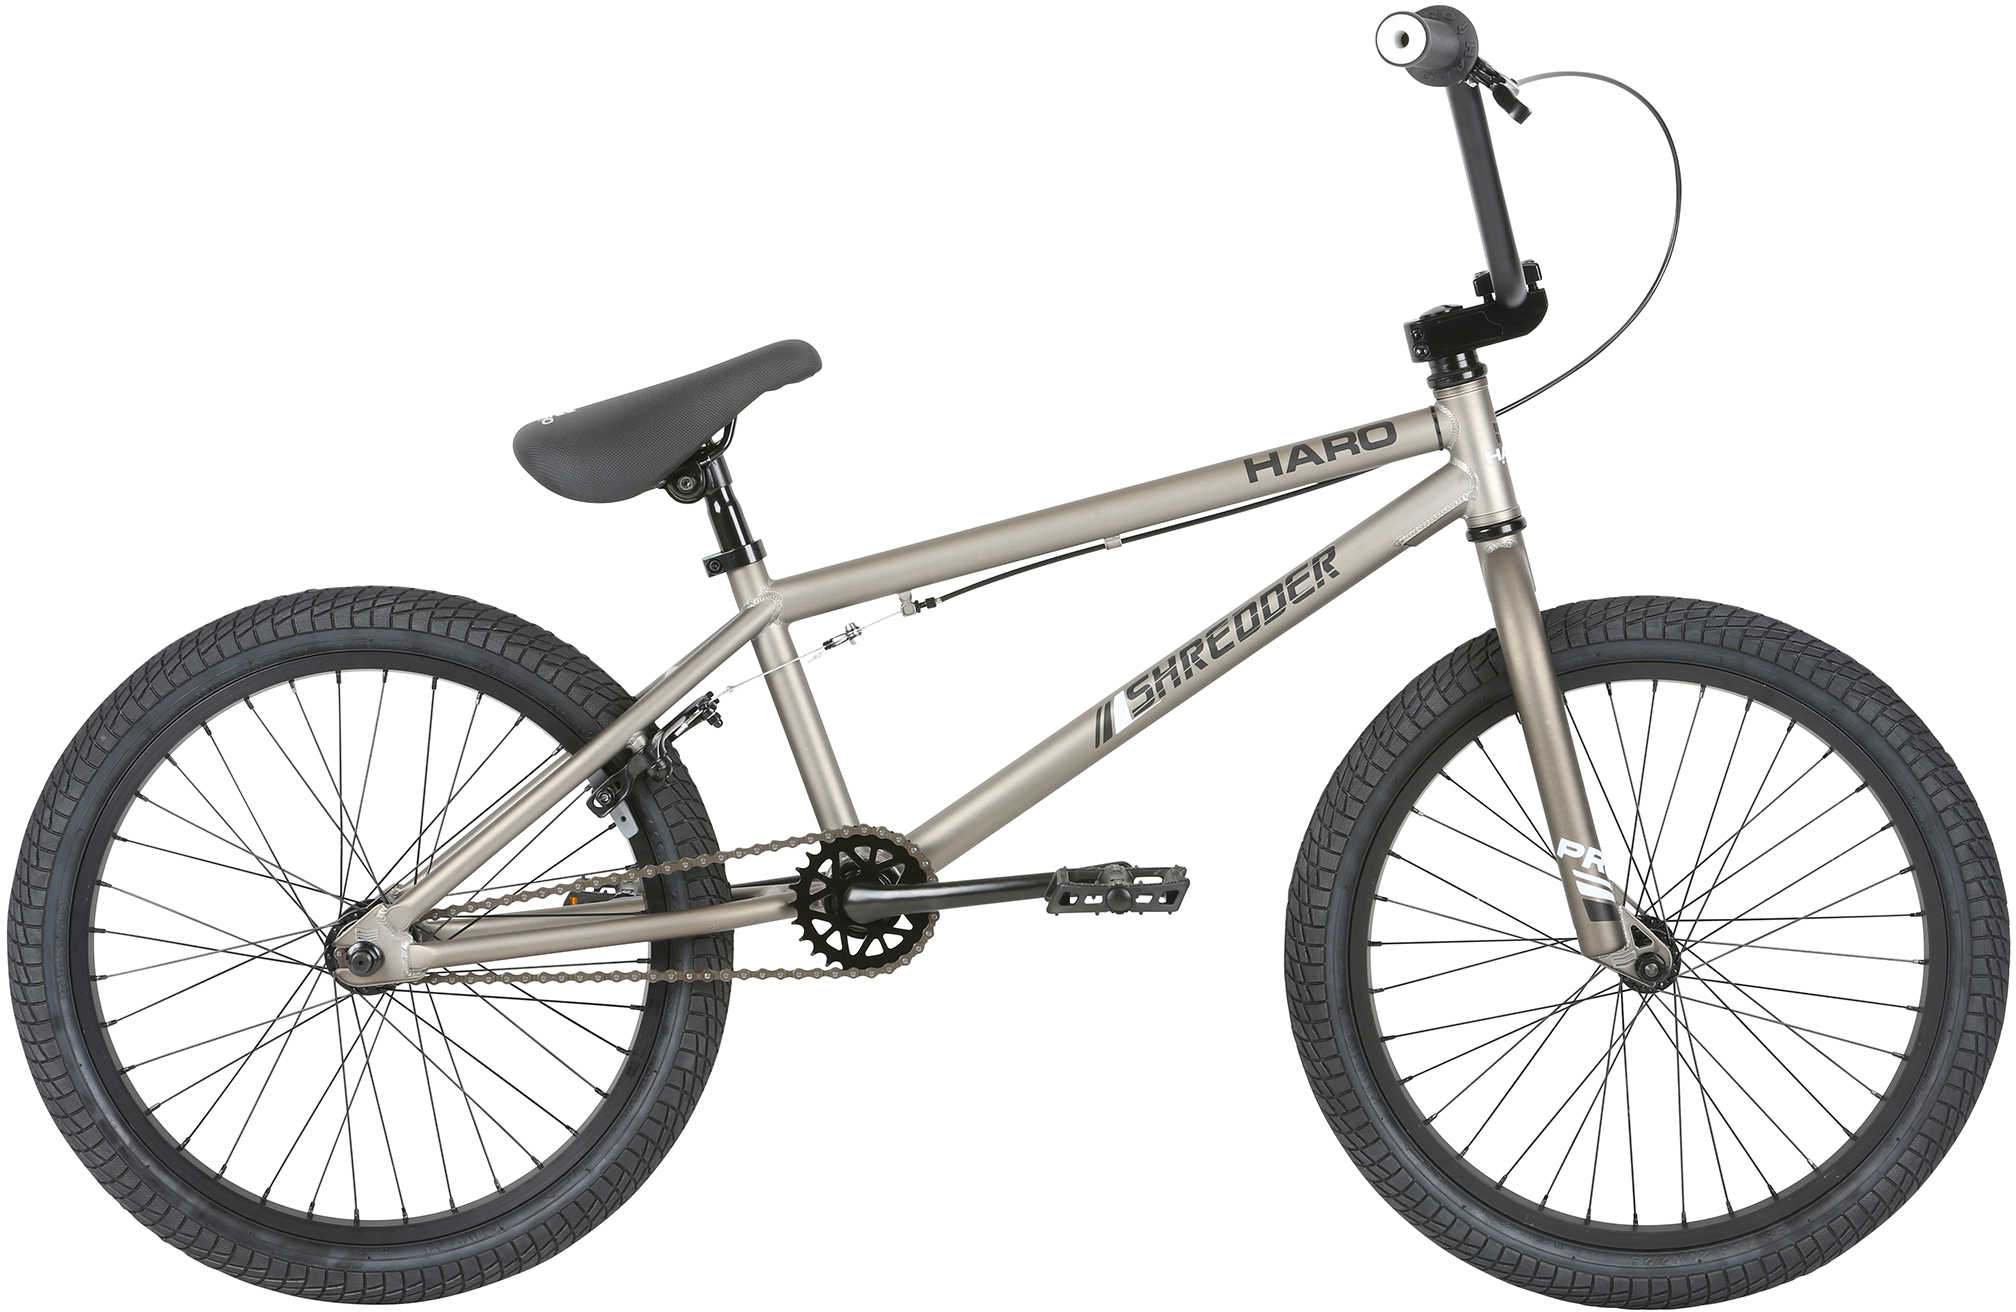 Haro Shredder Pro BMX Bike | BMX-cykler